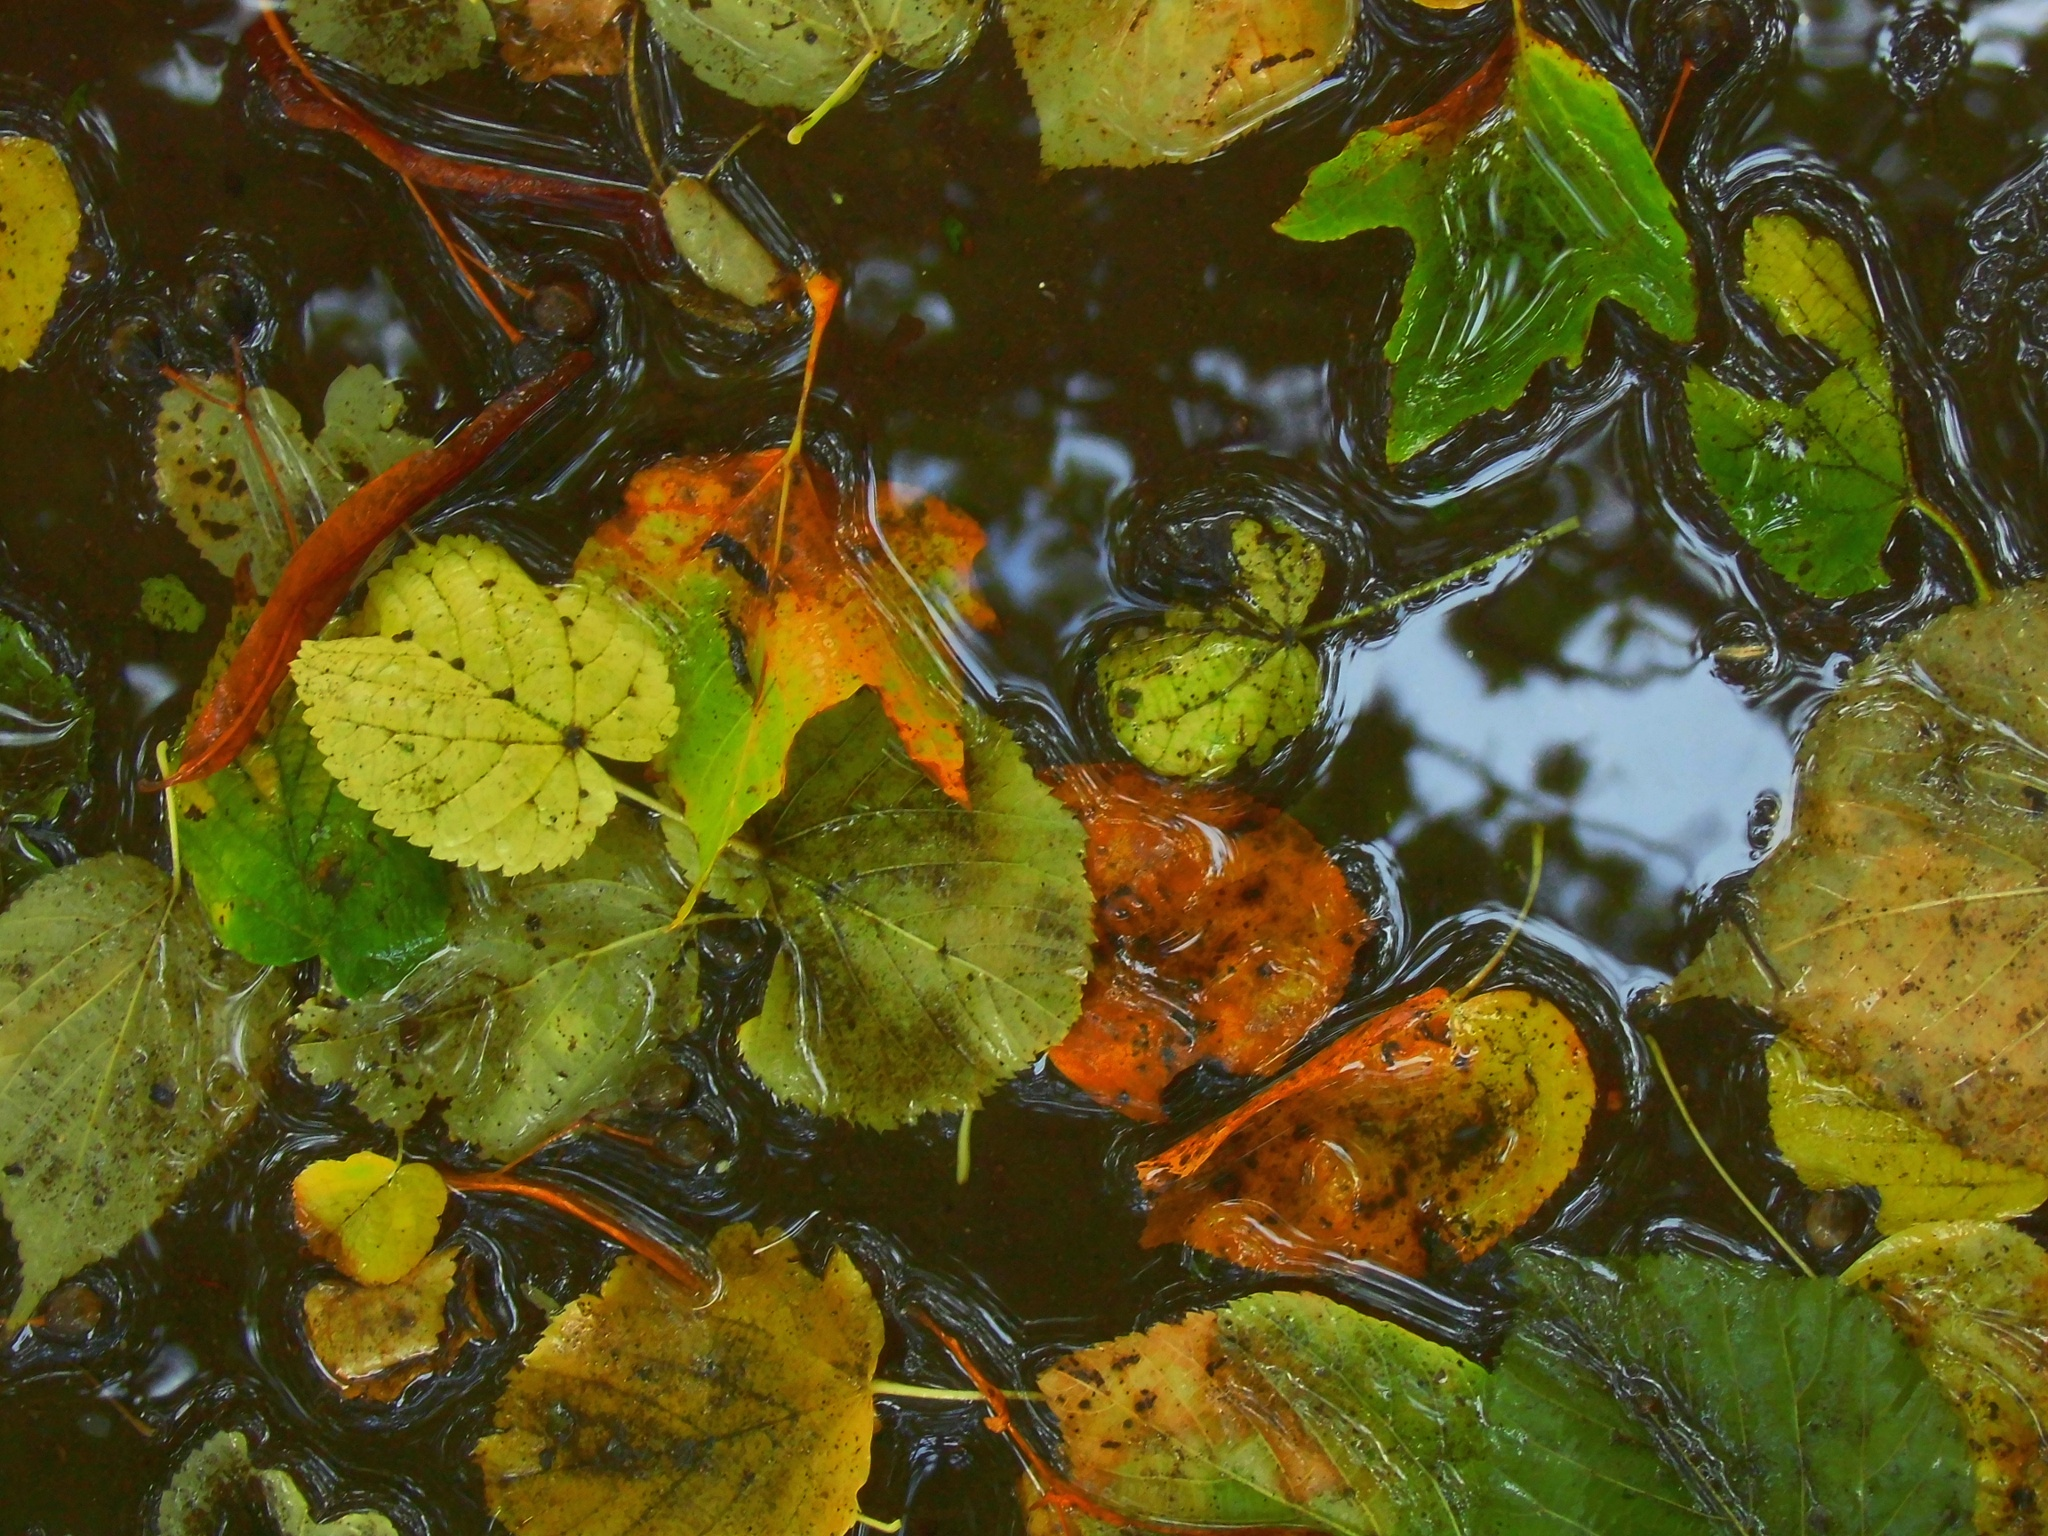 Wet Leaves by Sallyw